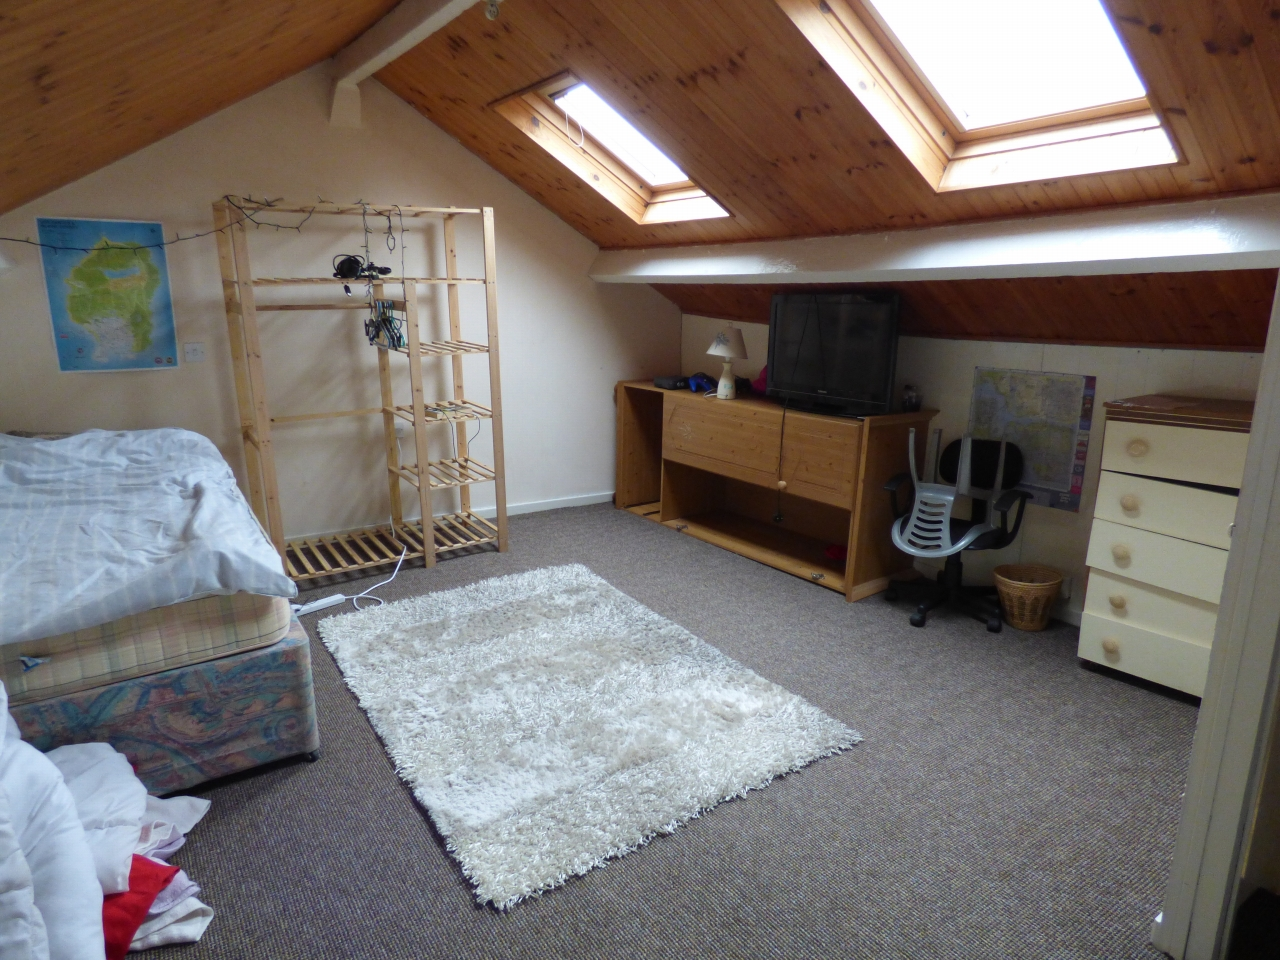 2 Bedroom Retail Property (high Street) For Sale - Image 8